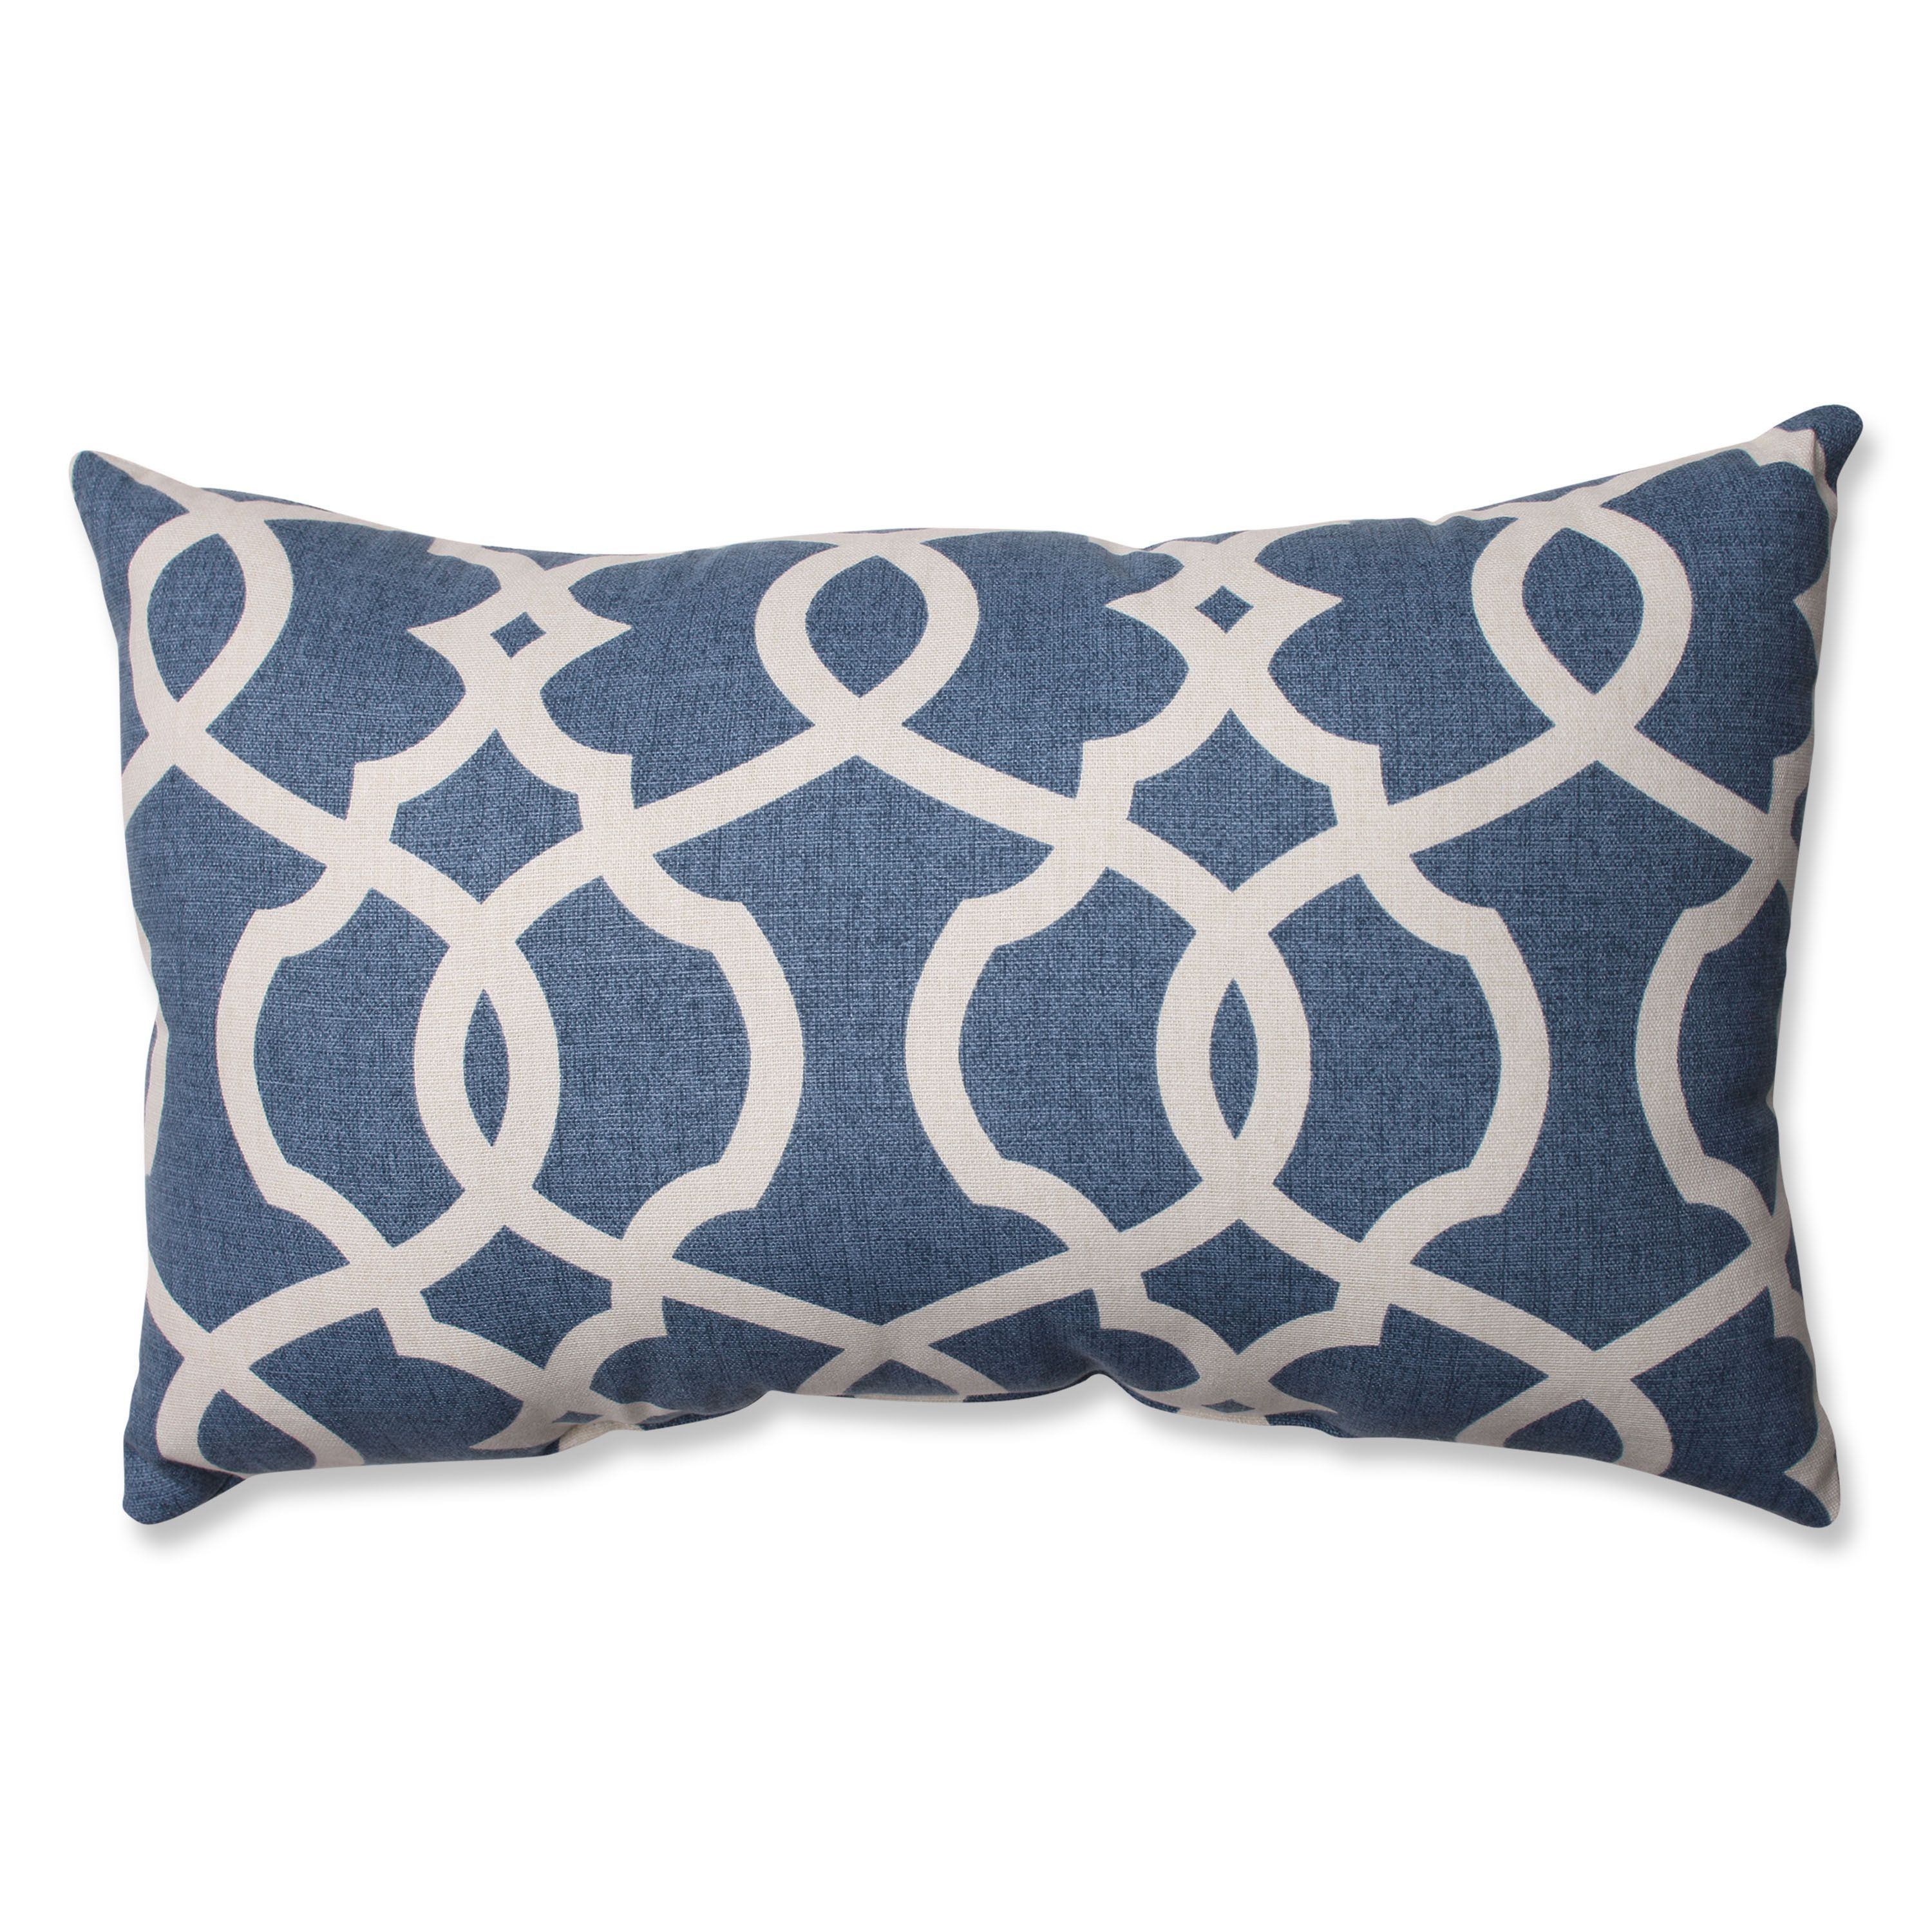 This damask decorative throw pillow is an